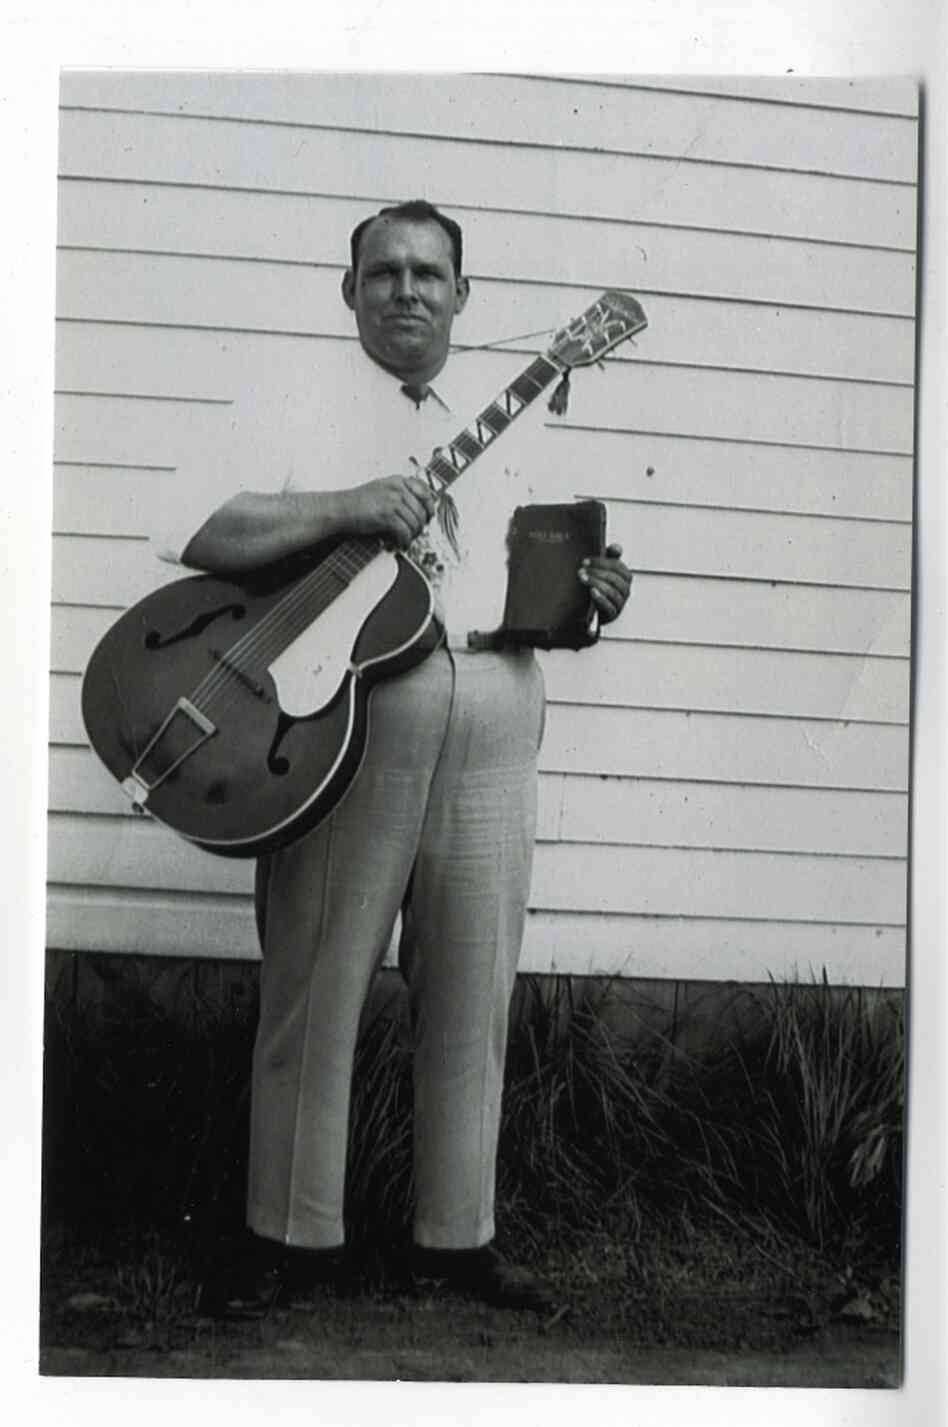 Brother Claude Ely, pictured in 1953 in front of the Letcher County Courthouse in Whitesburg, Ky.